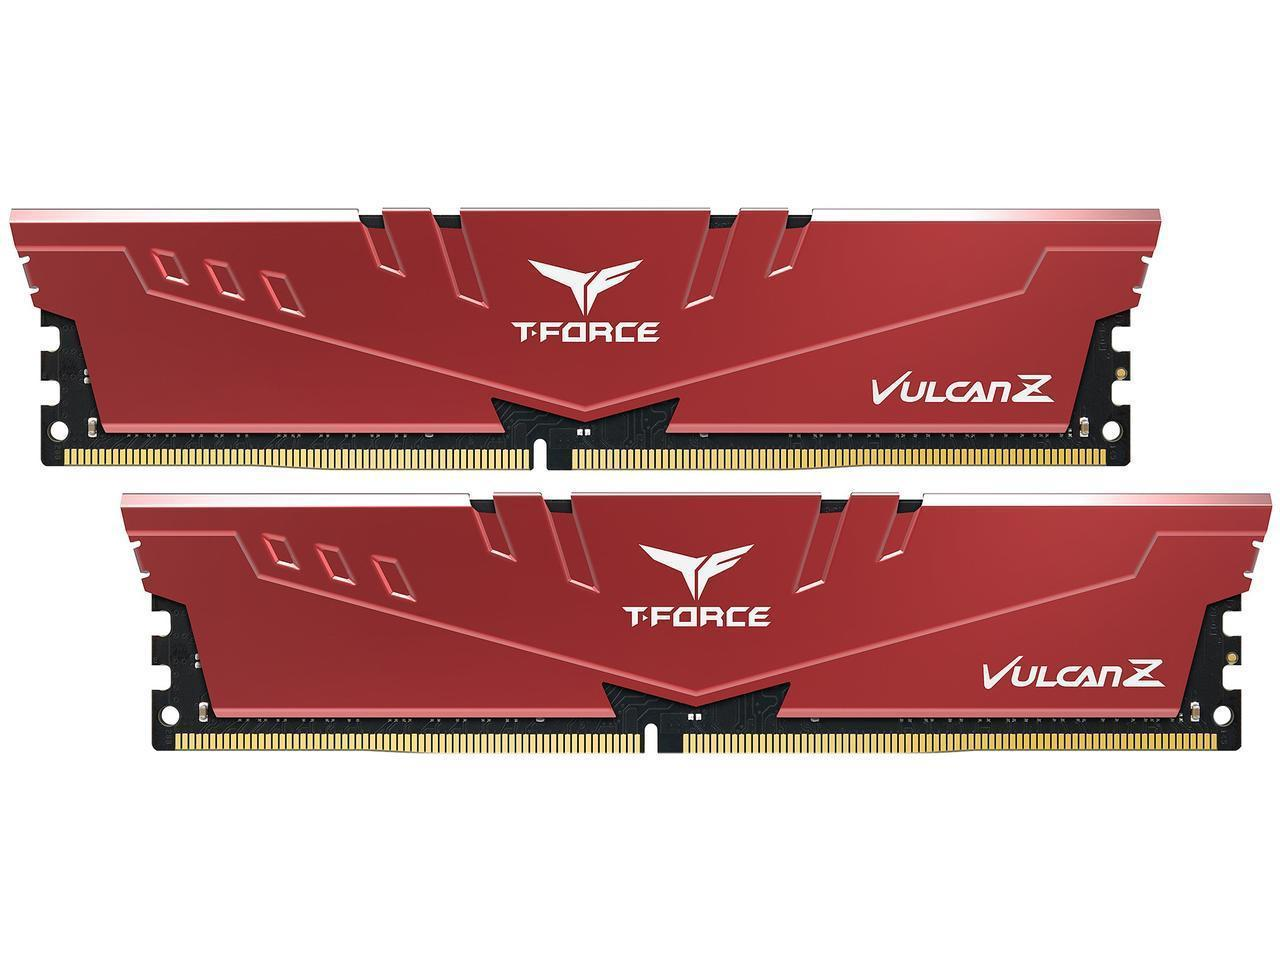 Памет Team Group T-Force Vulcan Z 16GB (2 x 8GB) 3000MHz DDR4 CL16-18-18-38 1.35V